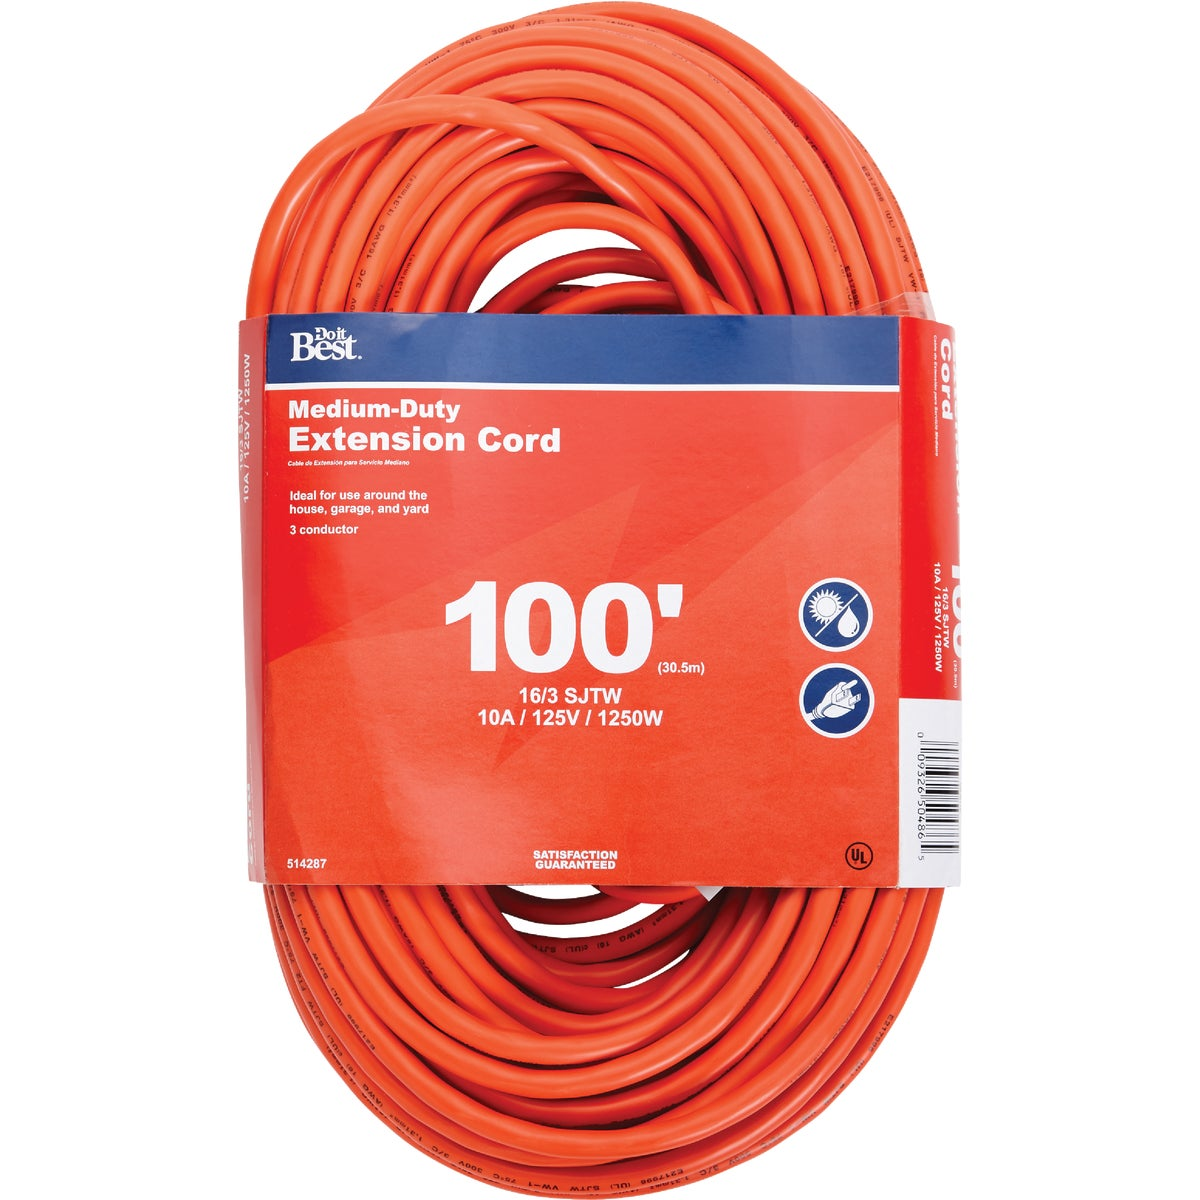 100'16/3 ORANGE EXT CORD - 550269 by Coleman Cable Import